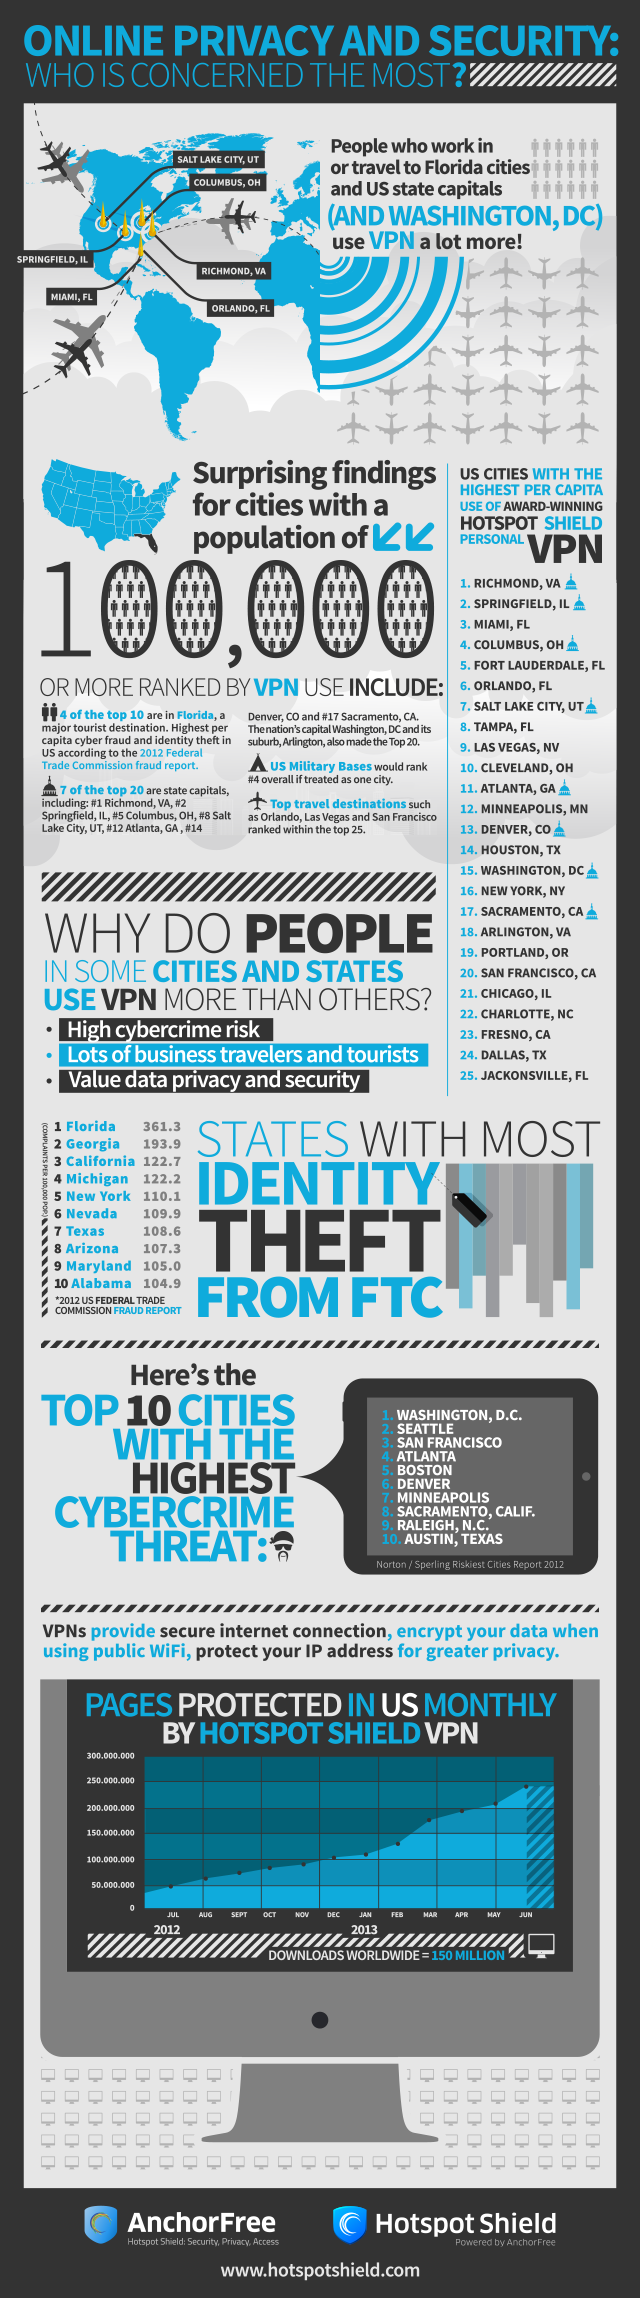 Infographic of the US cities with the highest security and privacy concerns